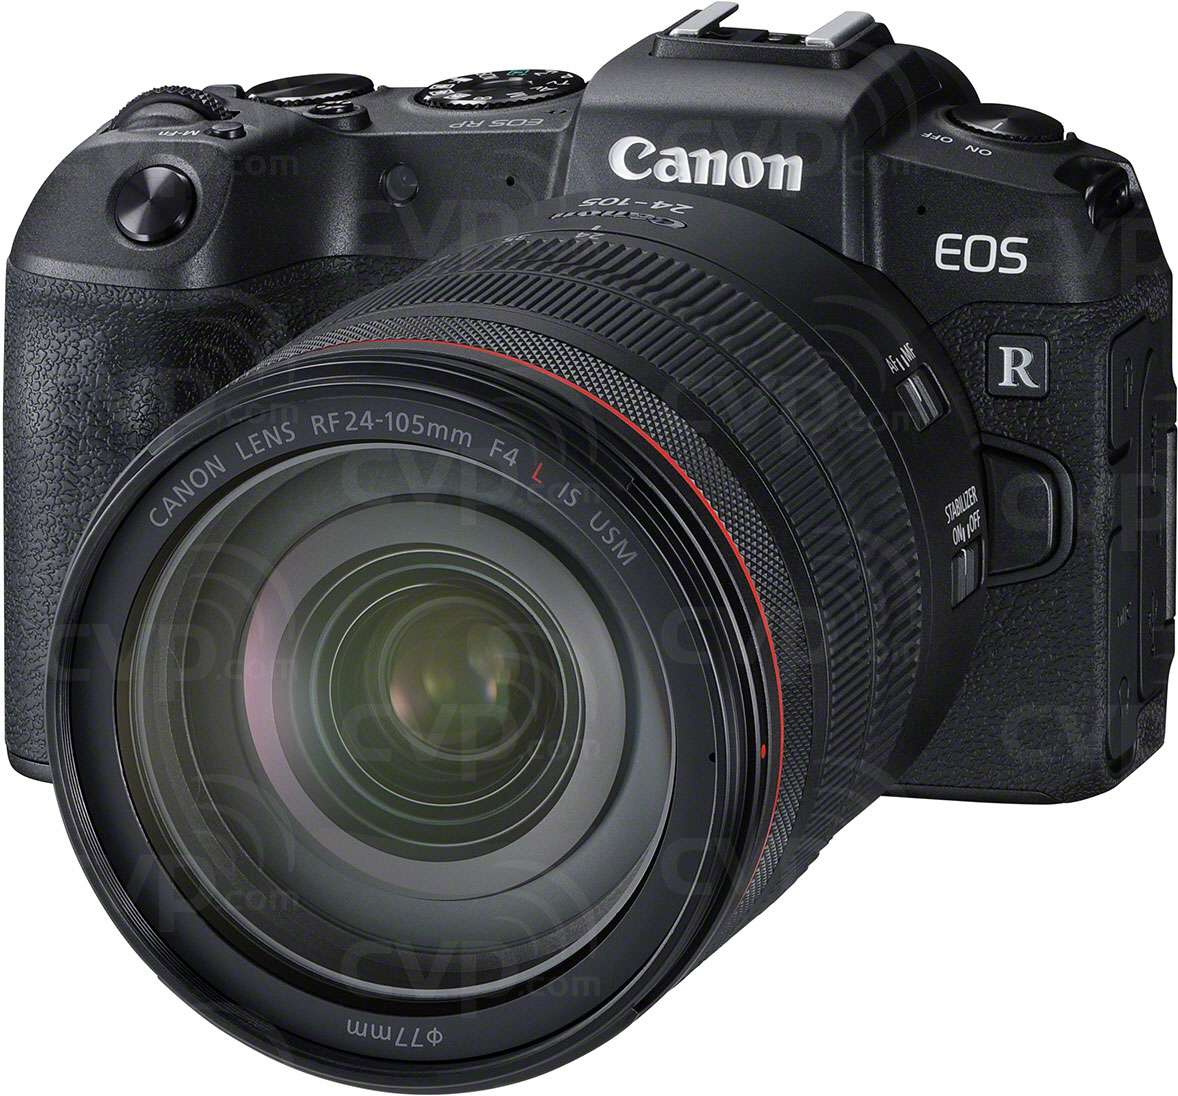 Canon EOS RP + Adapter + 24-105mm Lens